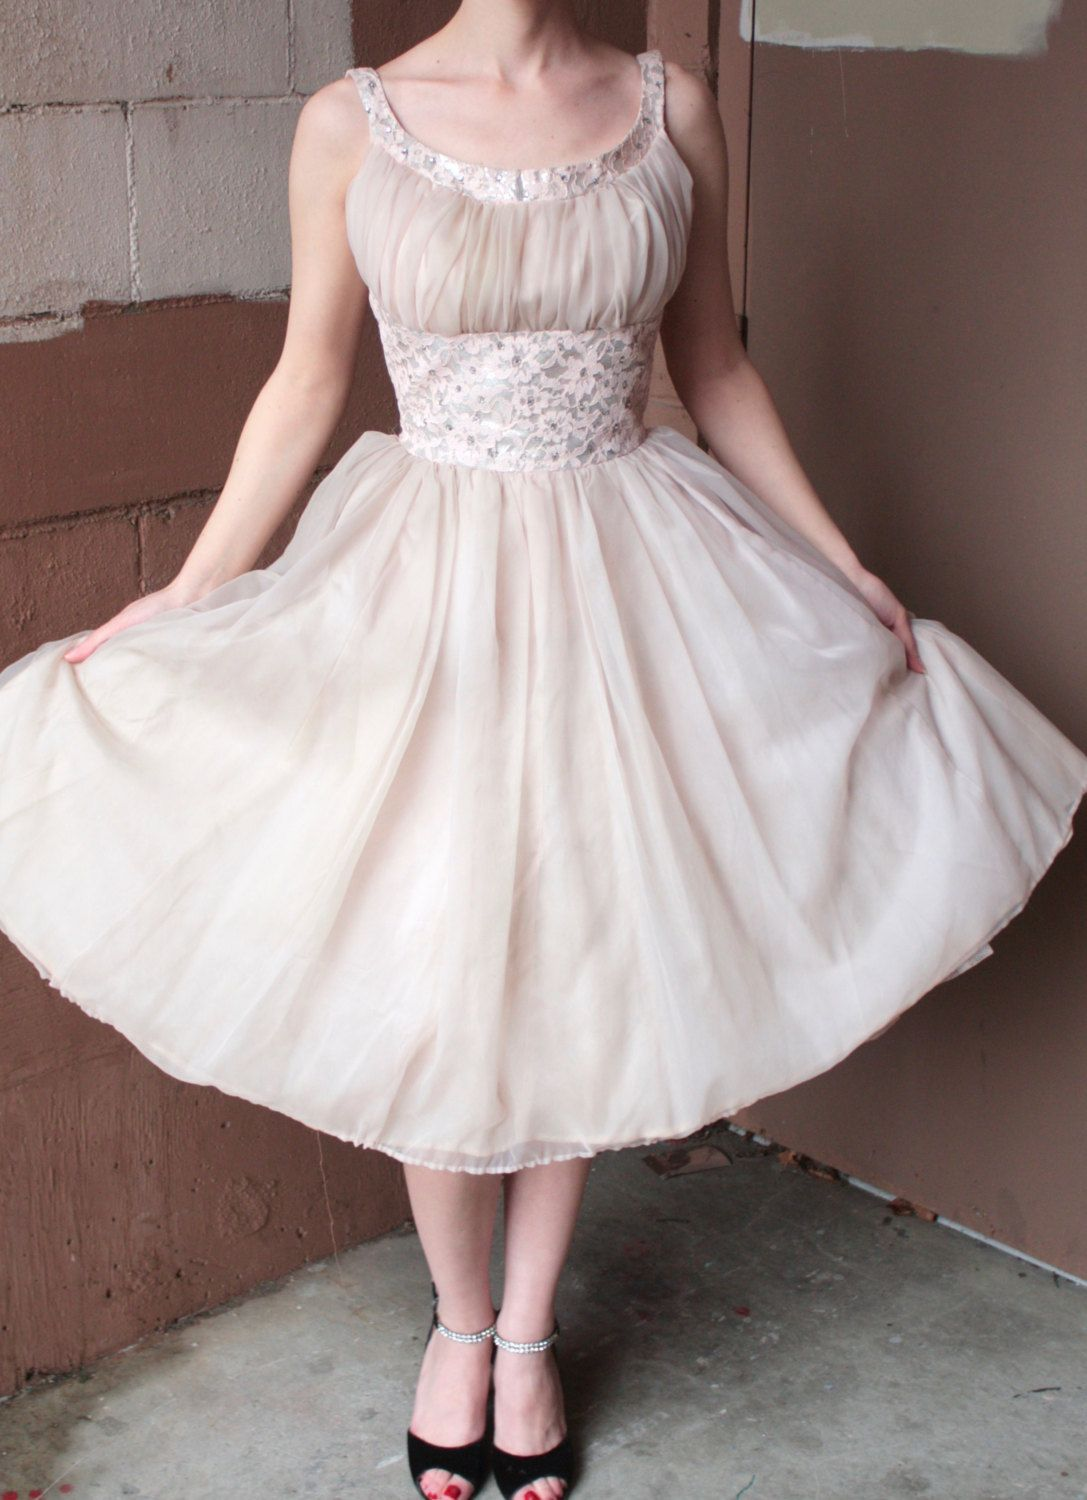 Lace dress 50s  Vintage us Dress  s Pale Pink and Silver Floral Lace Prom